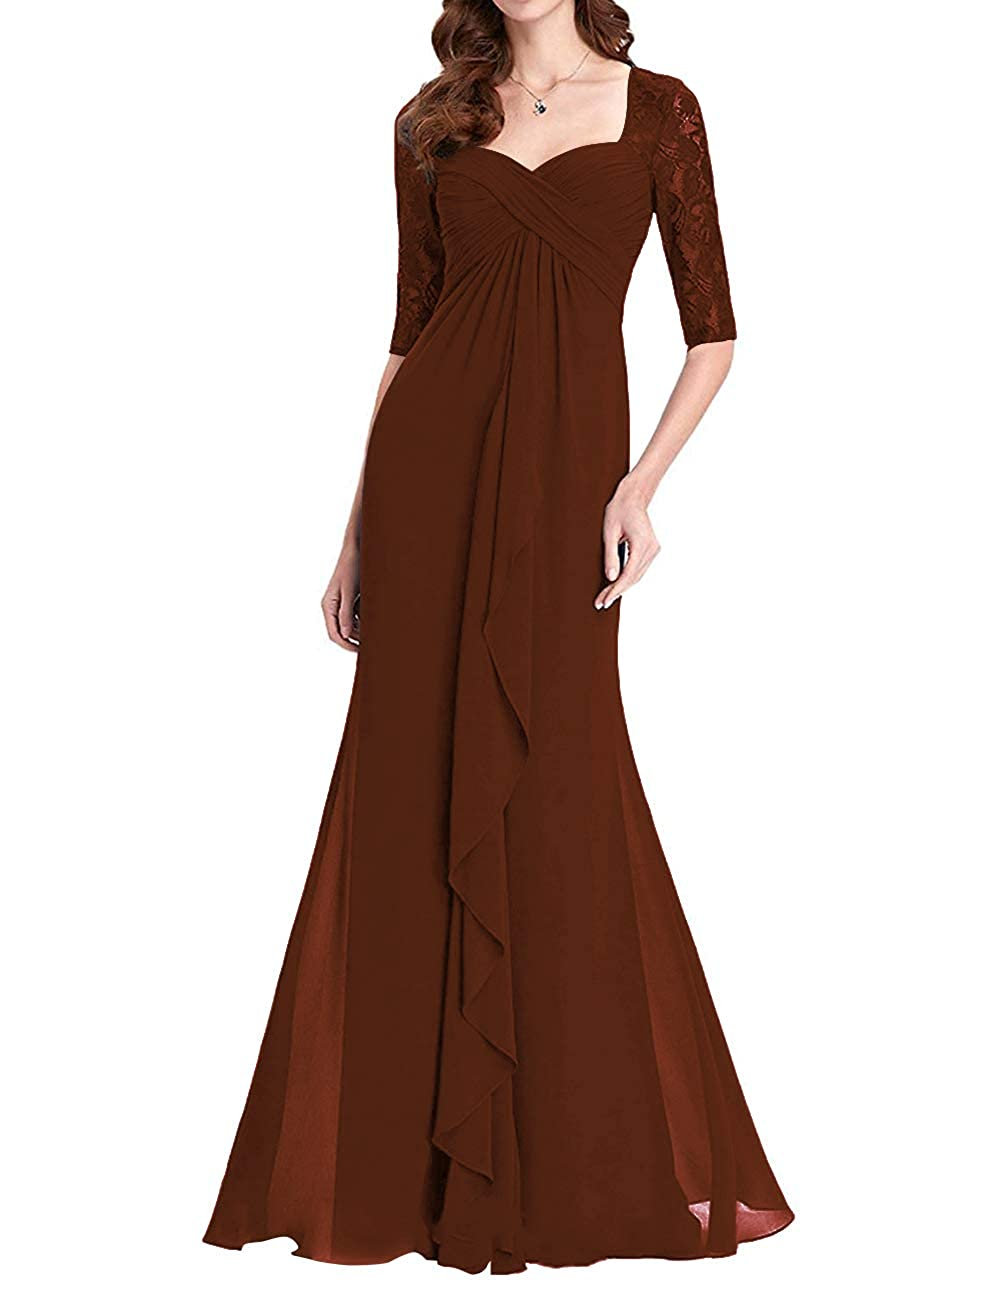 Chocolate Womens Lace Mother of The Bride Dress Plus Size Long Formal Party Gown